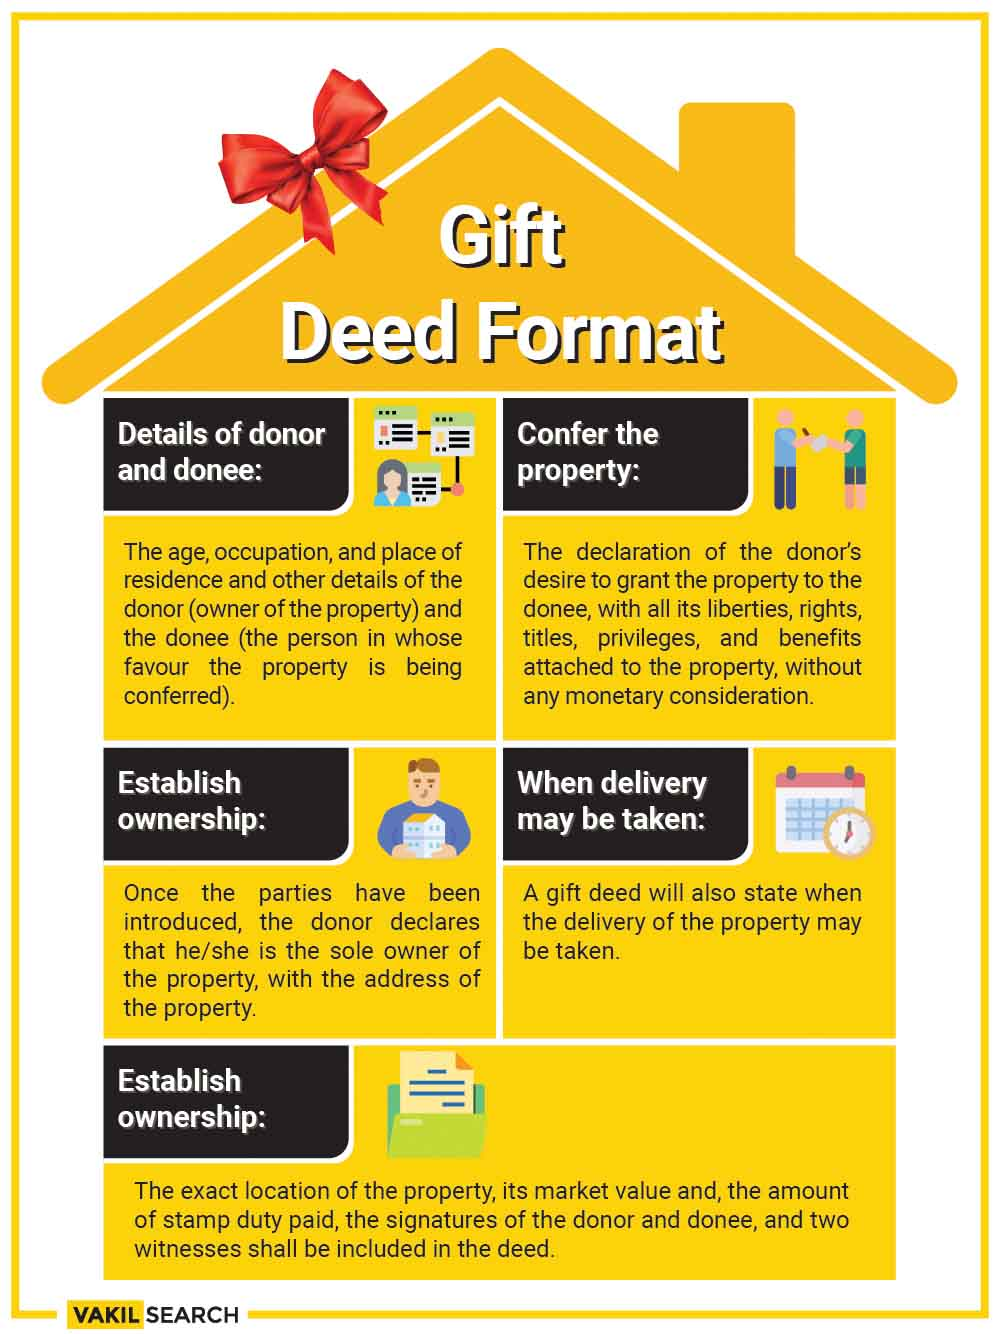 Gift Deed Format